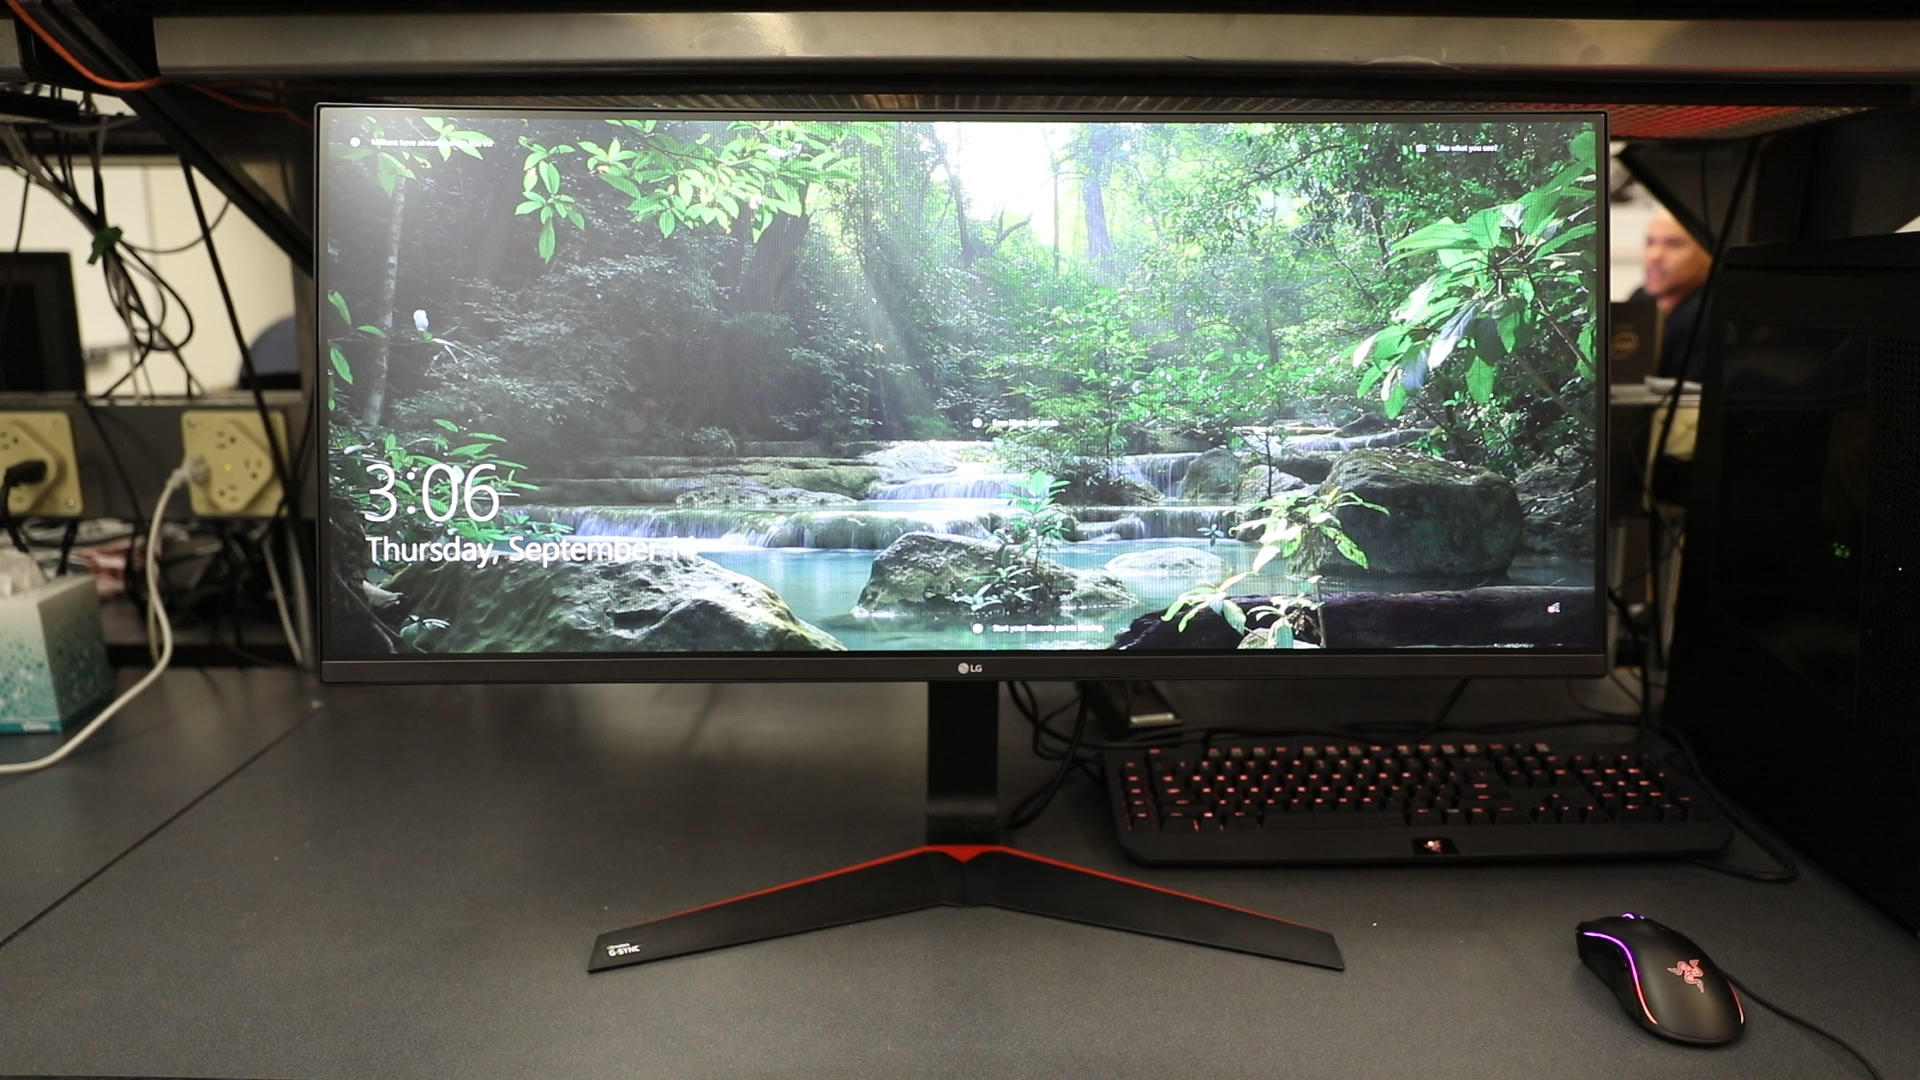 Video: LG 34U89C is a nice monitor when speed and color matter most